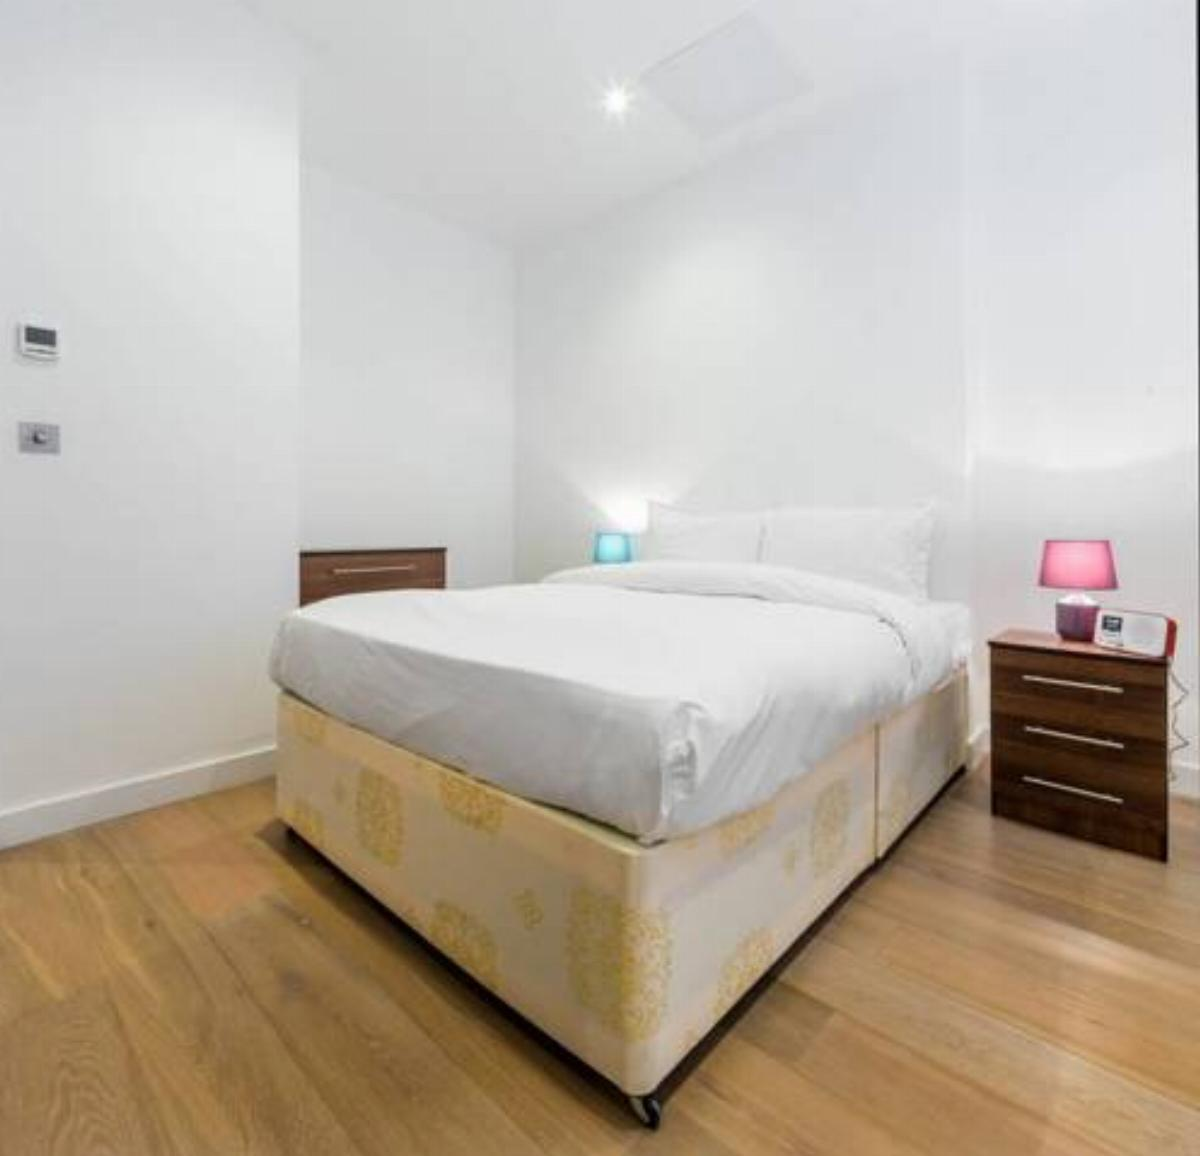 1 Bedroom Apartments In London: Modern 1 Bed Apartment In Earl's Court Hotel, London